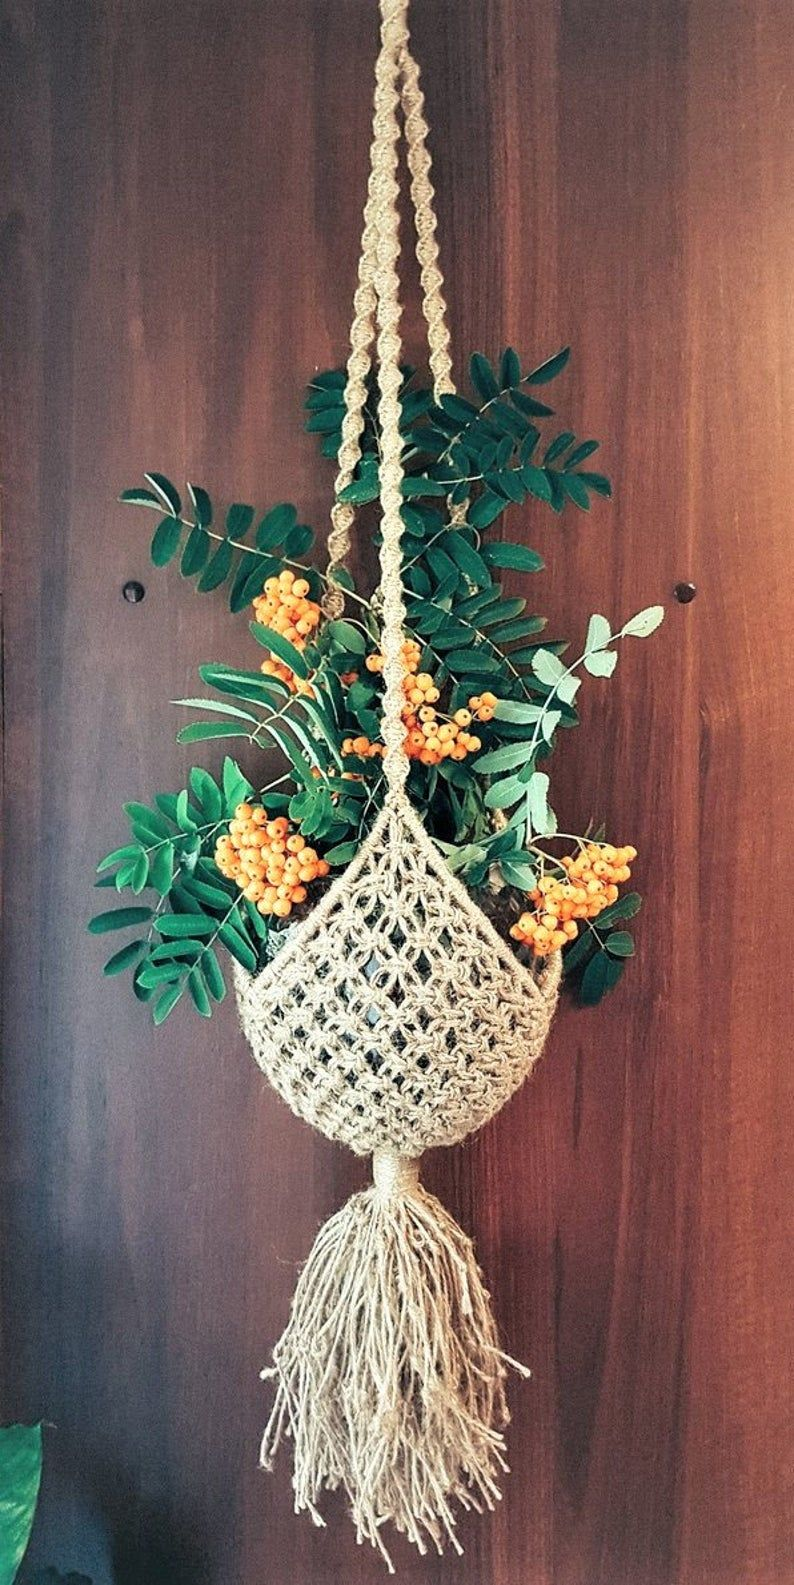 Photo of Macrame plant hanger, Hanging Plant Holder, Rope pot planter, Boho, Handmade, Natural cord, Succulent Planter, indoor, outdoor, Home Decor